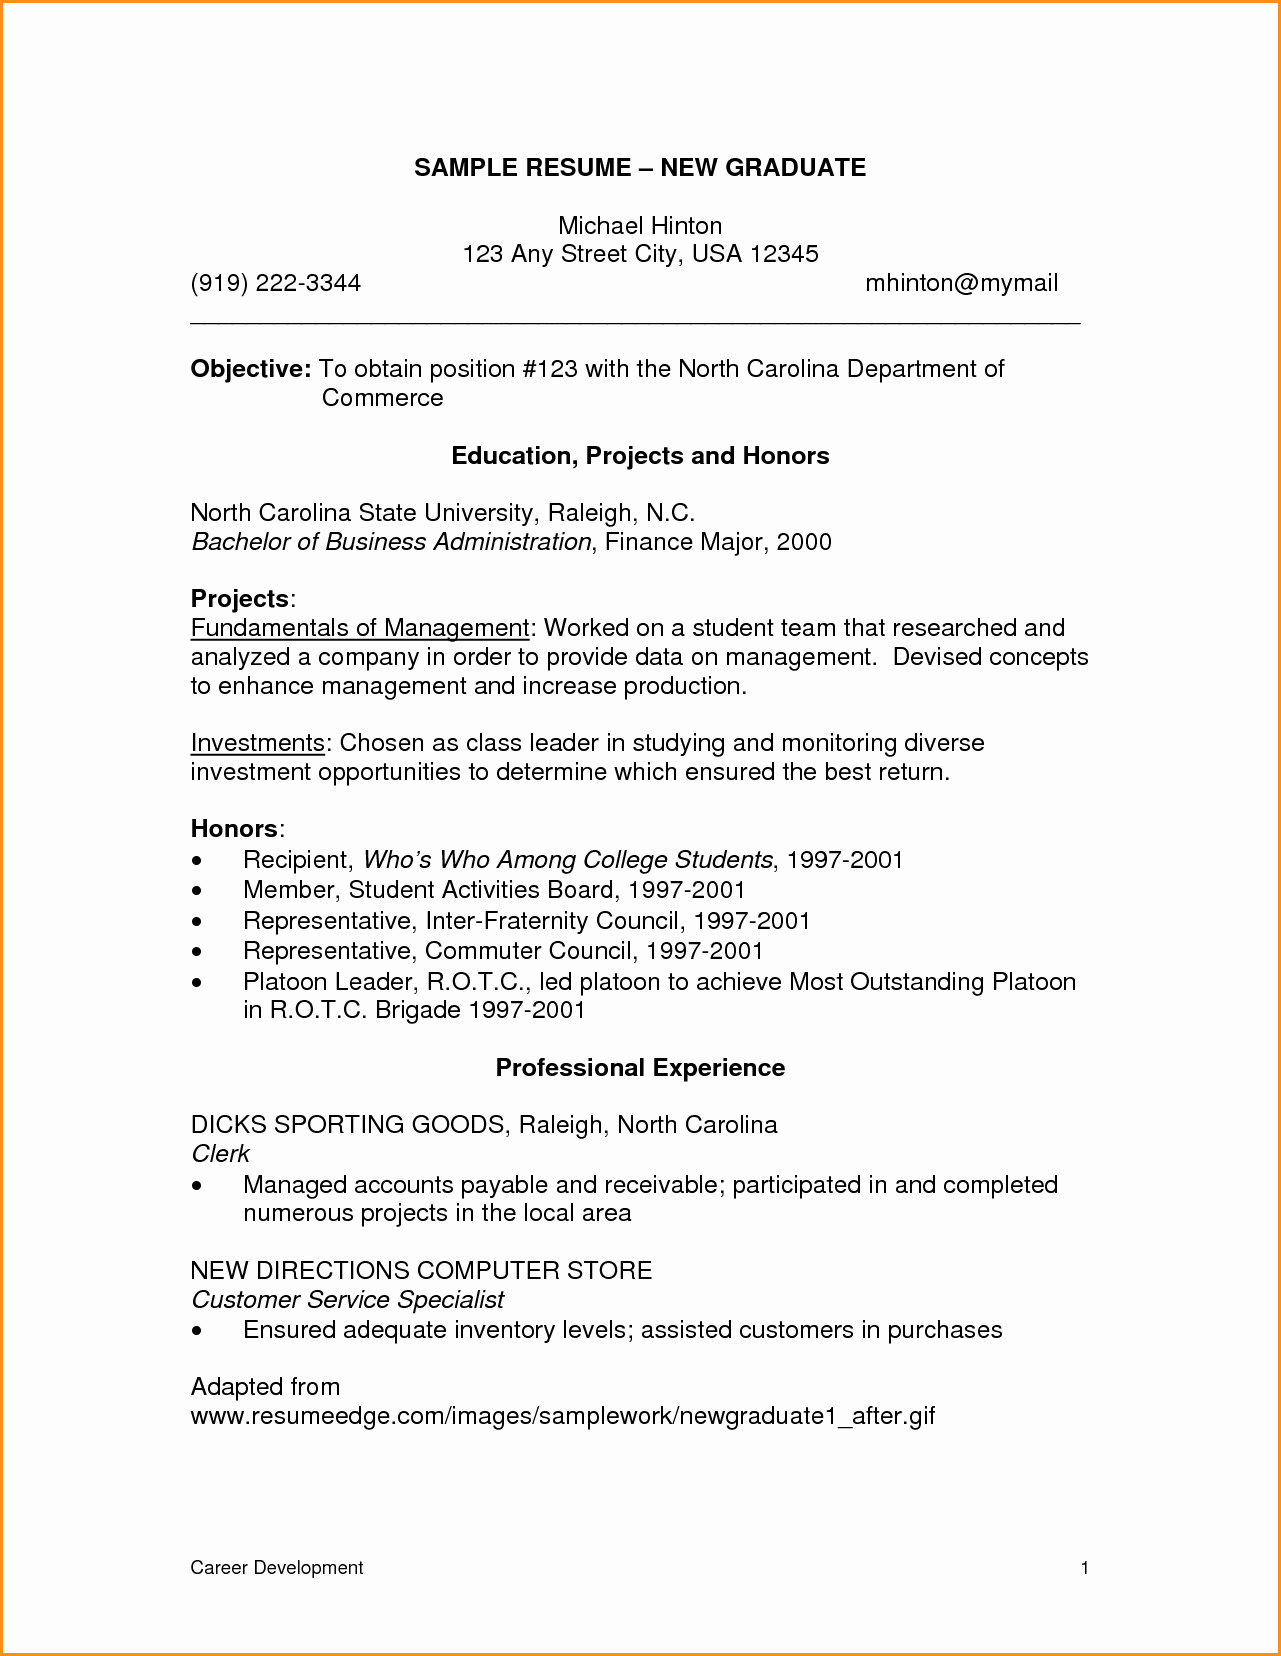 Graduate Nurse Resume Template Best Of 8 Graduate Nurse Resume Template